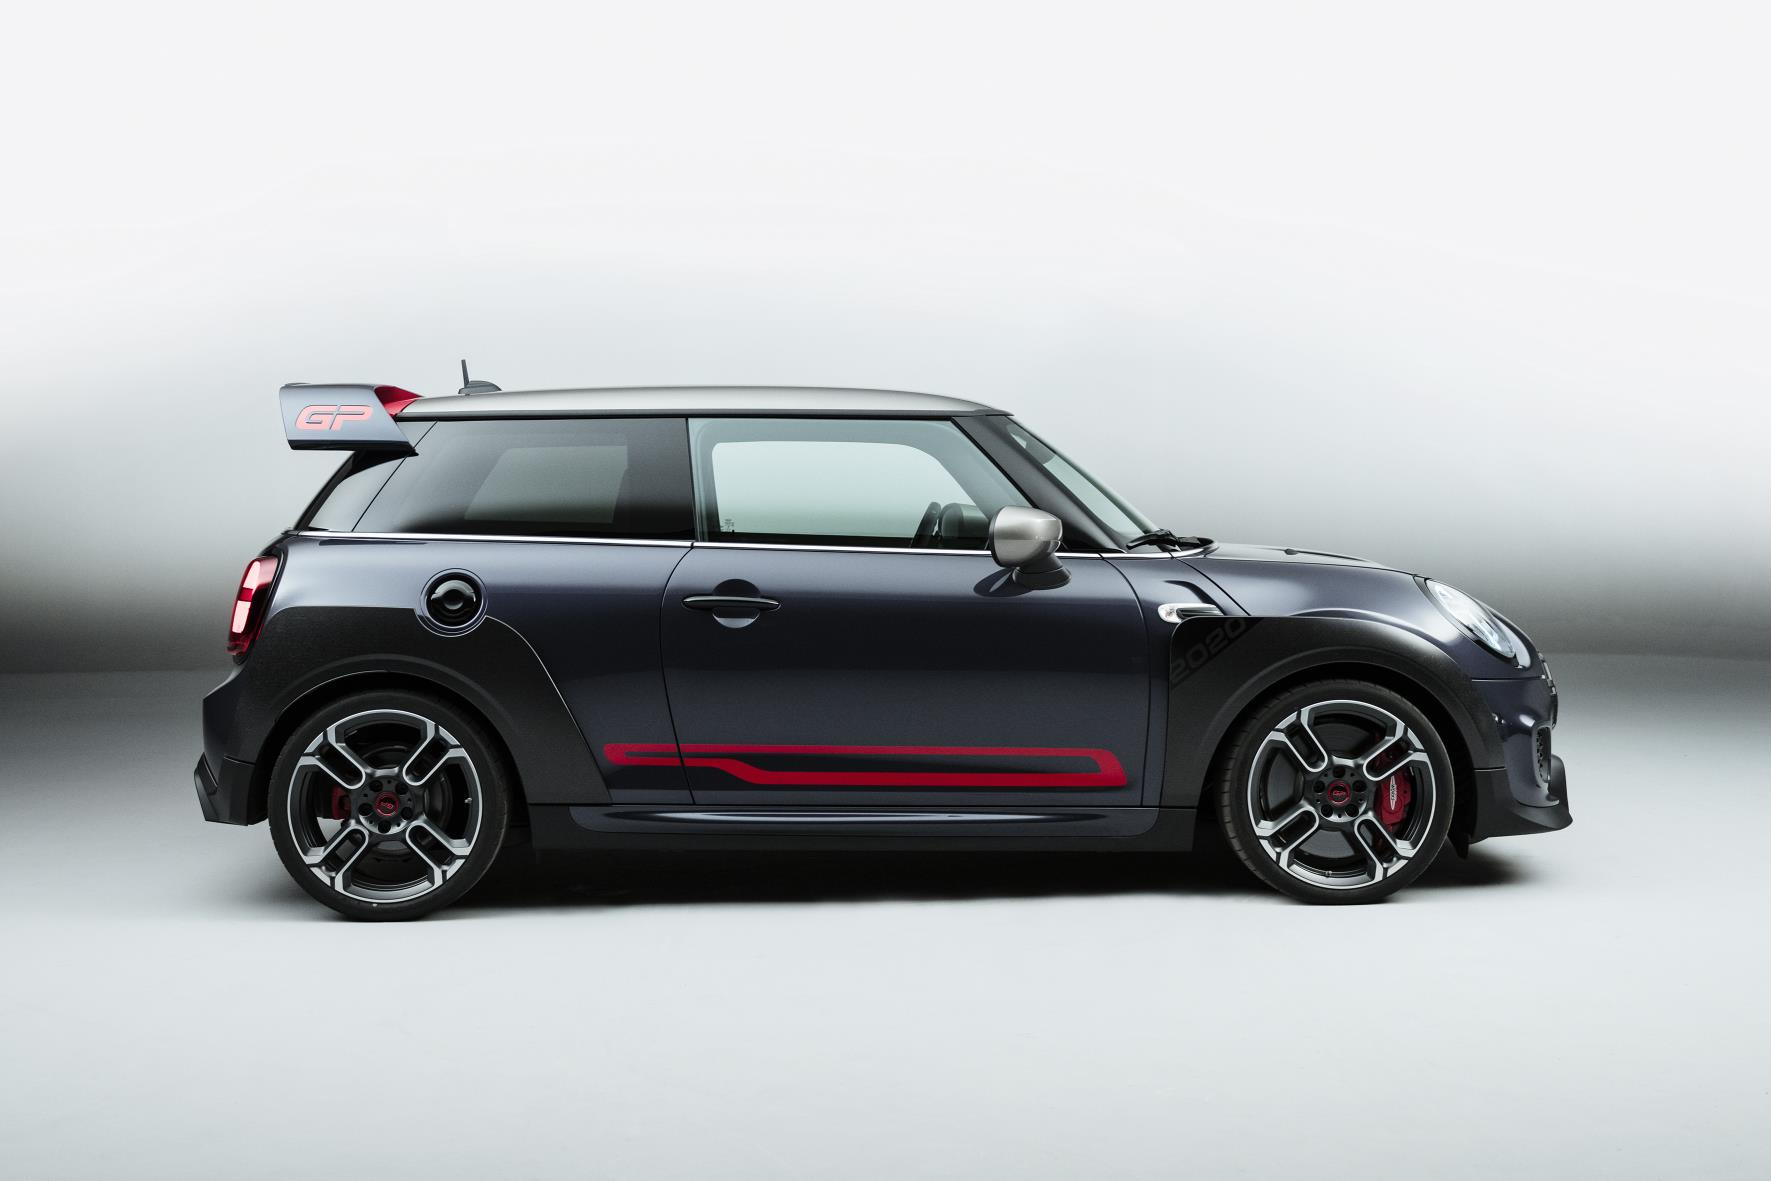 Design of the MINI John Cooper Works GP